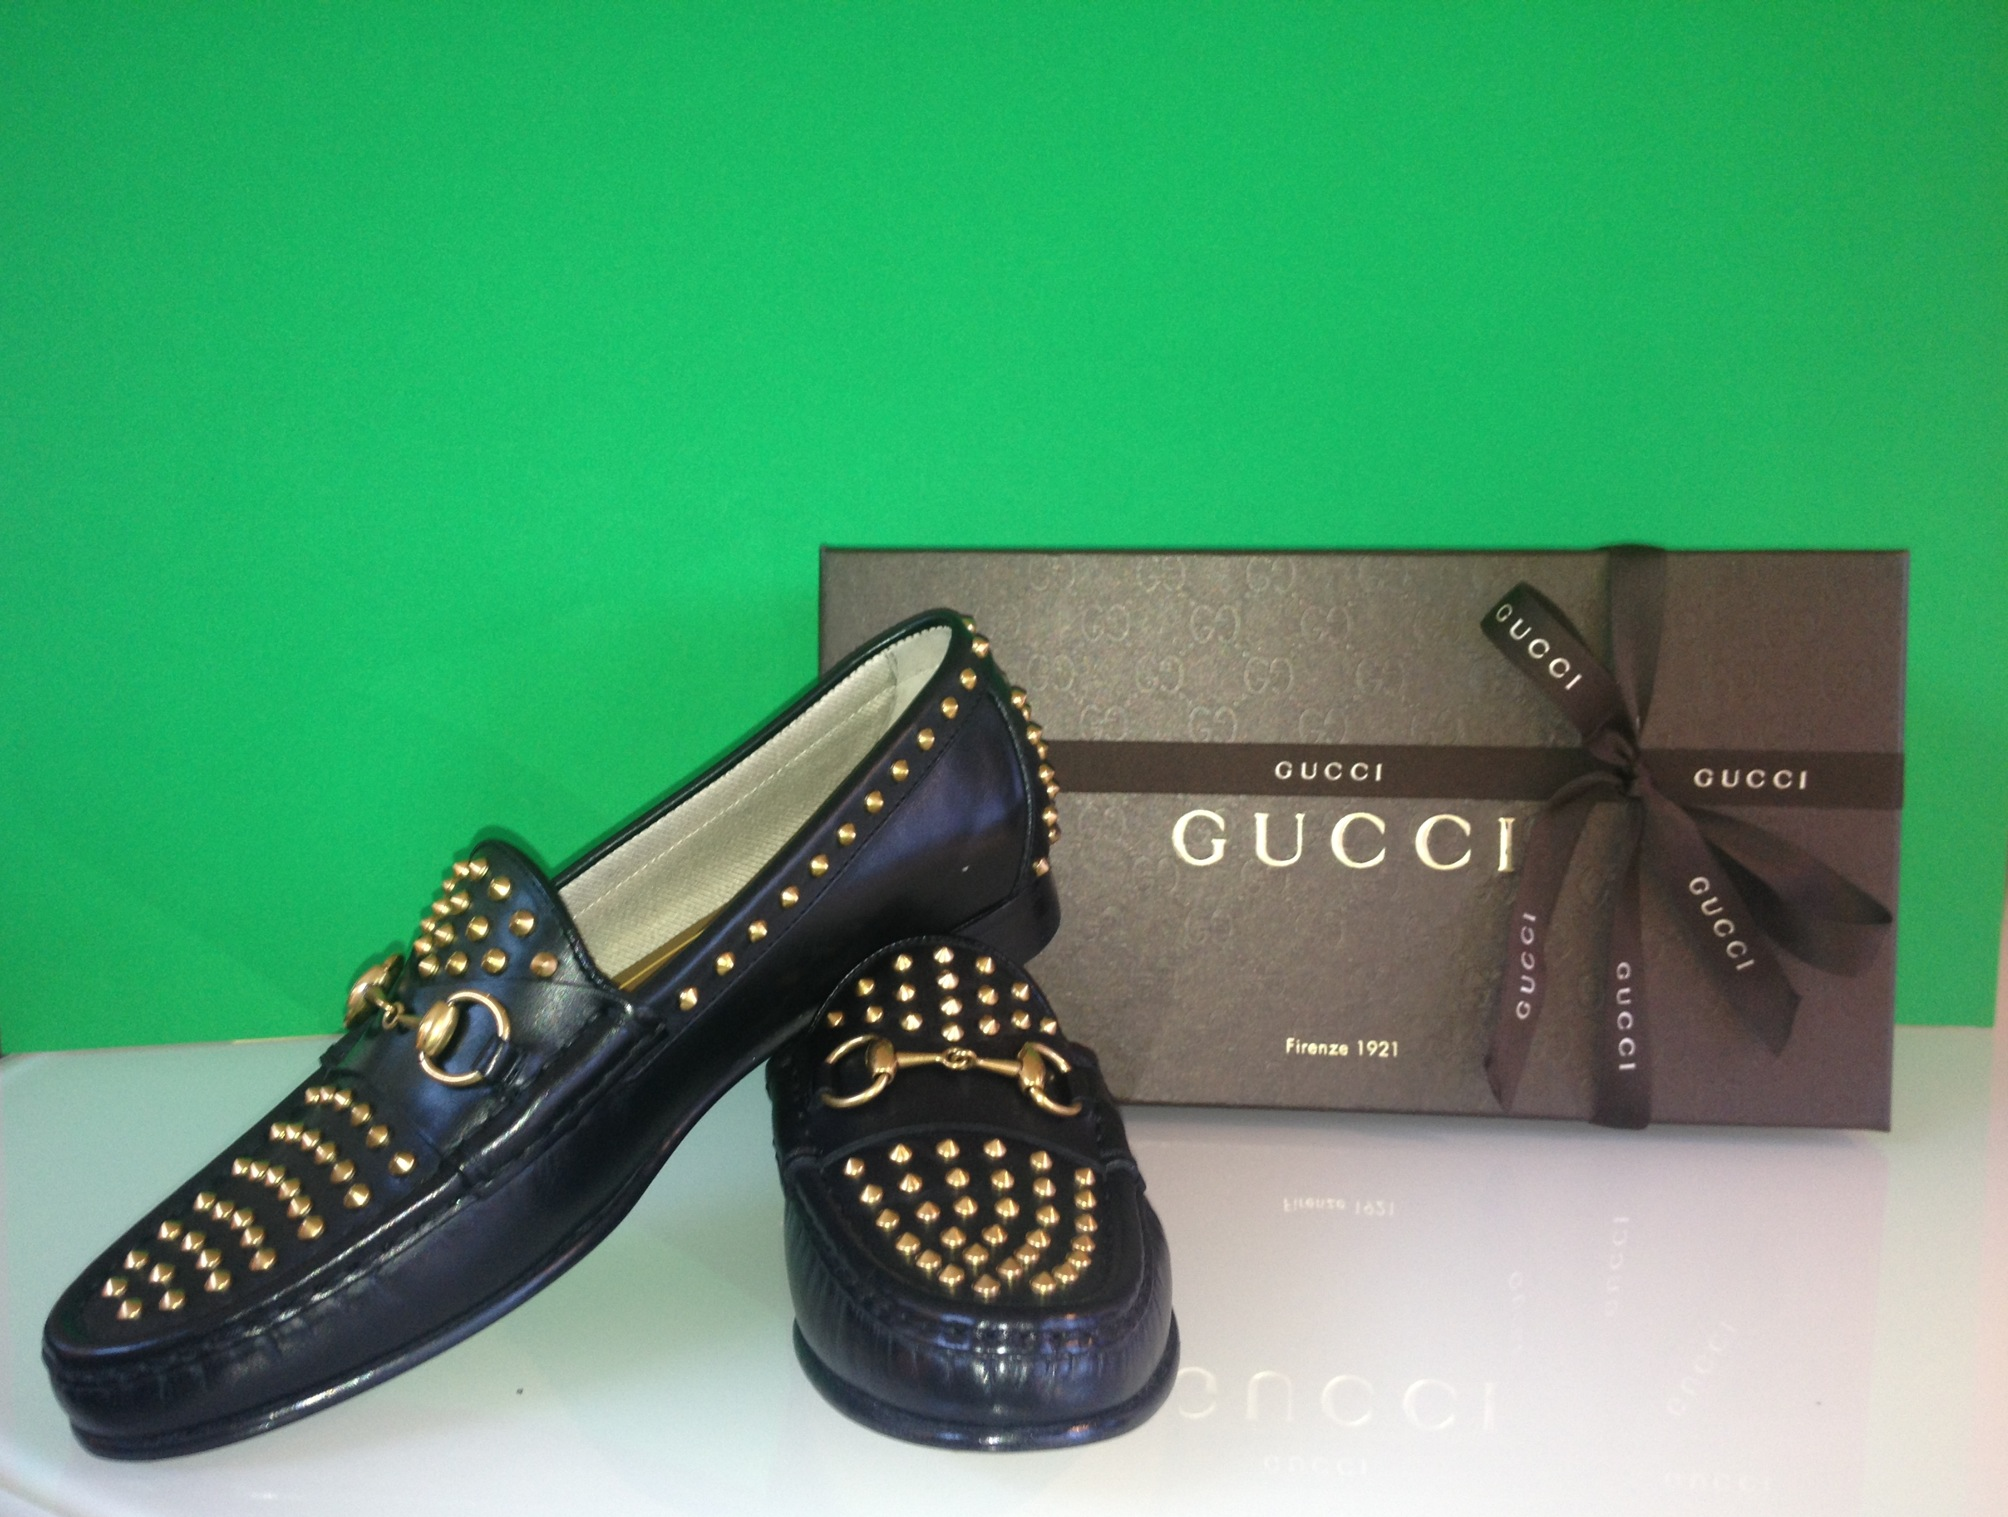 fa82513aac2 Gypsetgirl Giveaway  60th Anniversary Gucci Spiked Loafer - Gypset ...